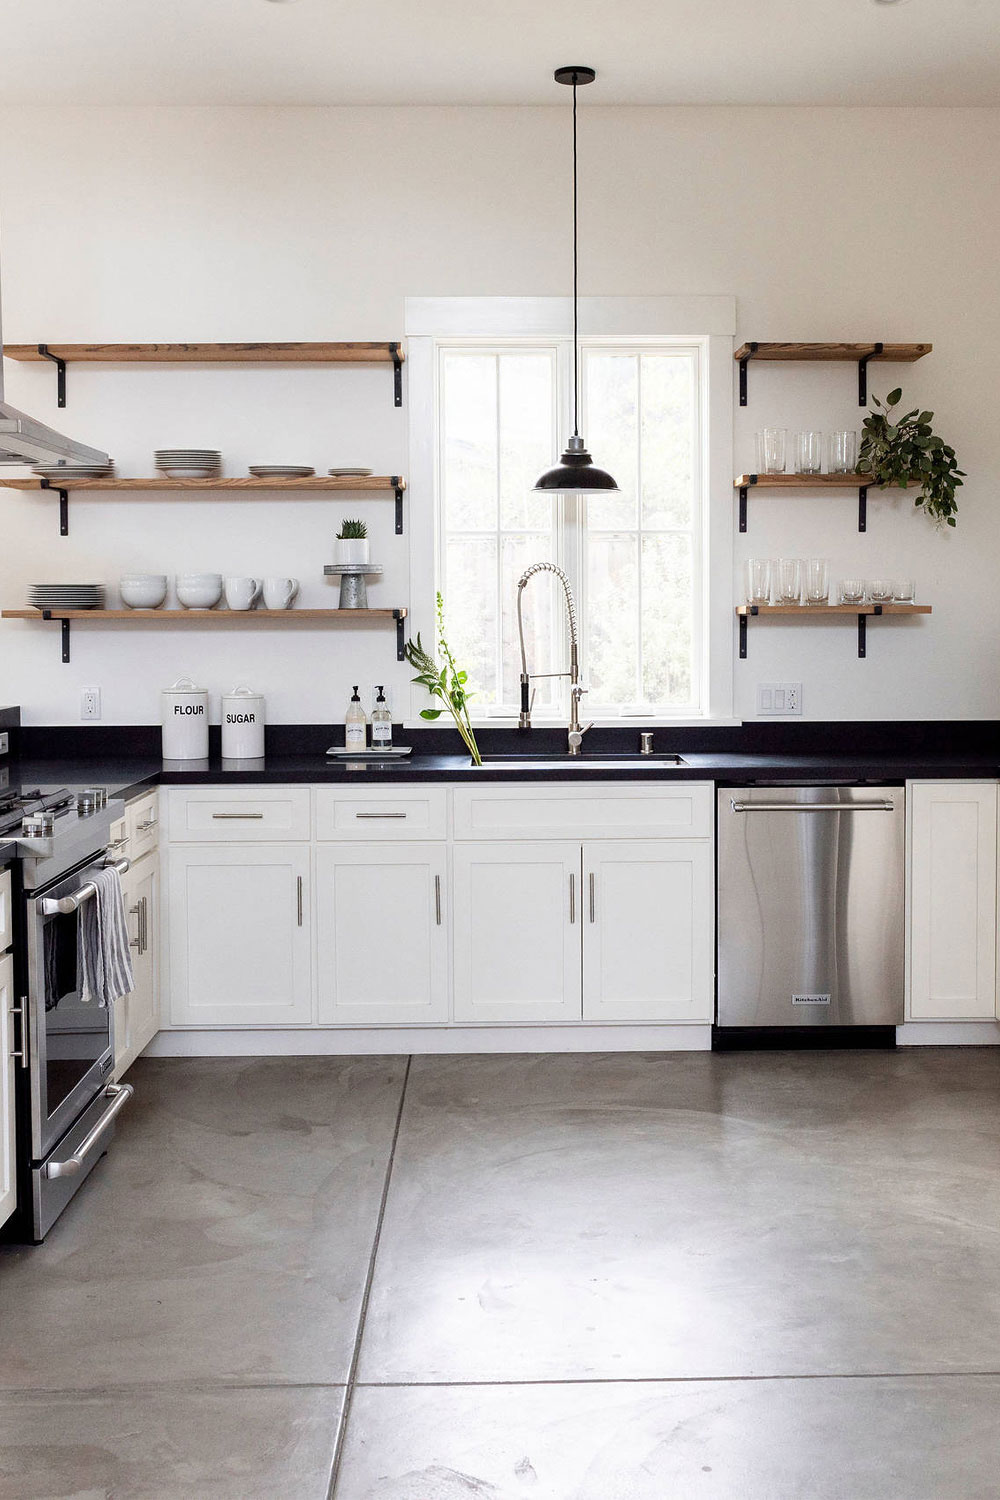 54 White Cabinet Black Countertop Inspiring Look Cabinets